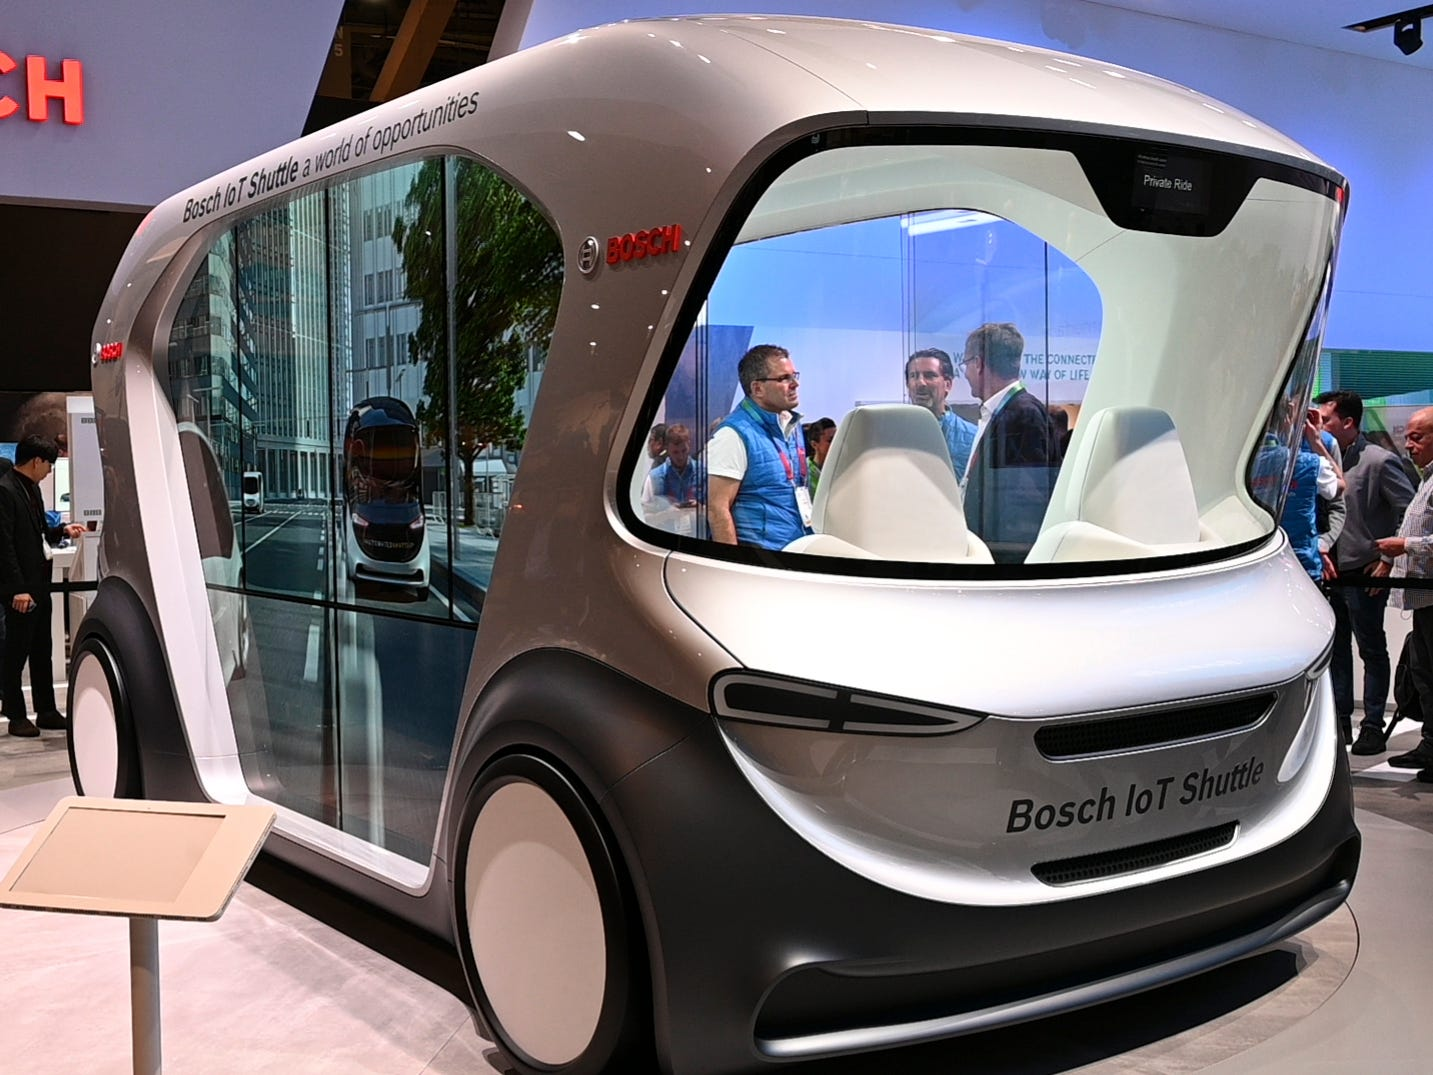 Bosch showed off a concept vehicle, the IoT Shuttle.